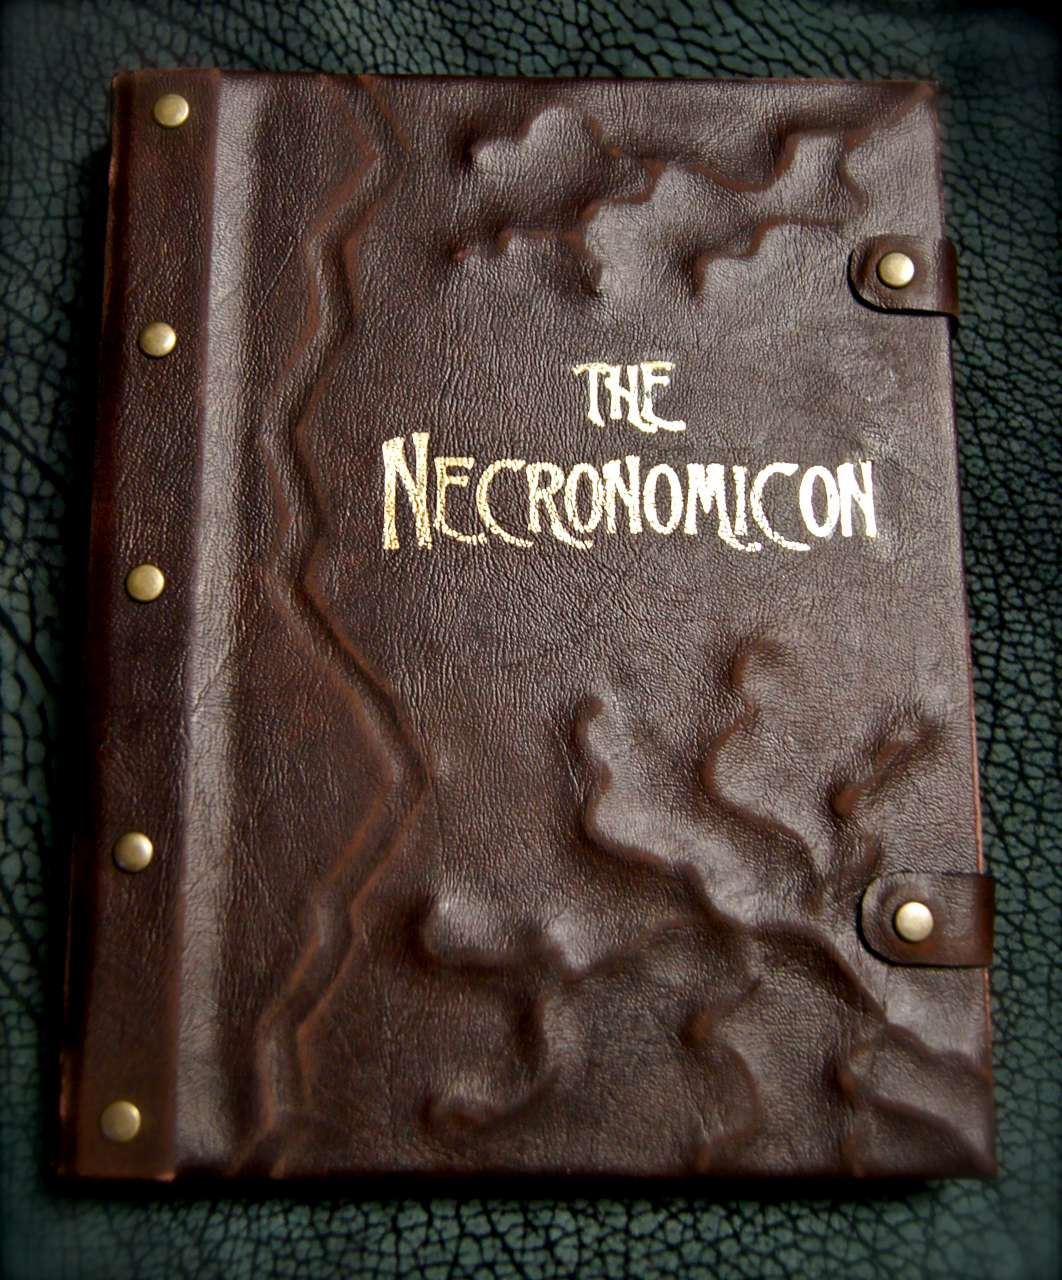 awesome kitchen gadgets home depot necronomicon hp lovecraft ipad / tablet ereader kindle ...